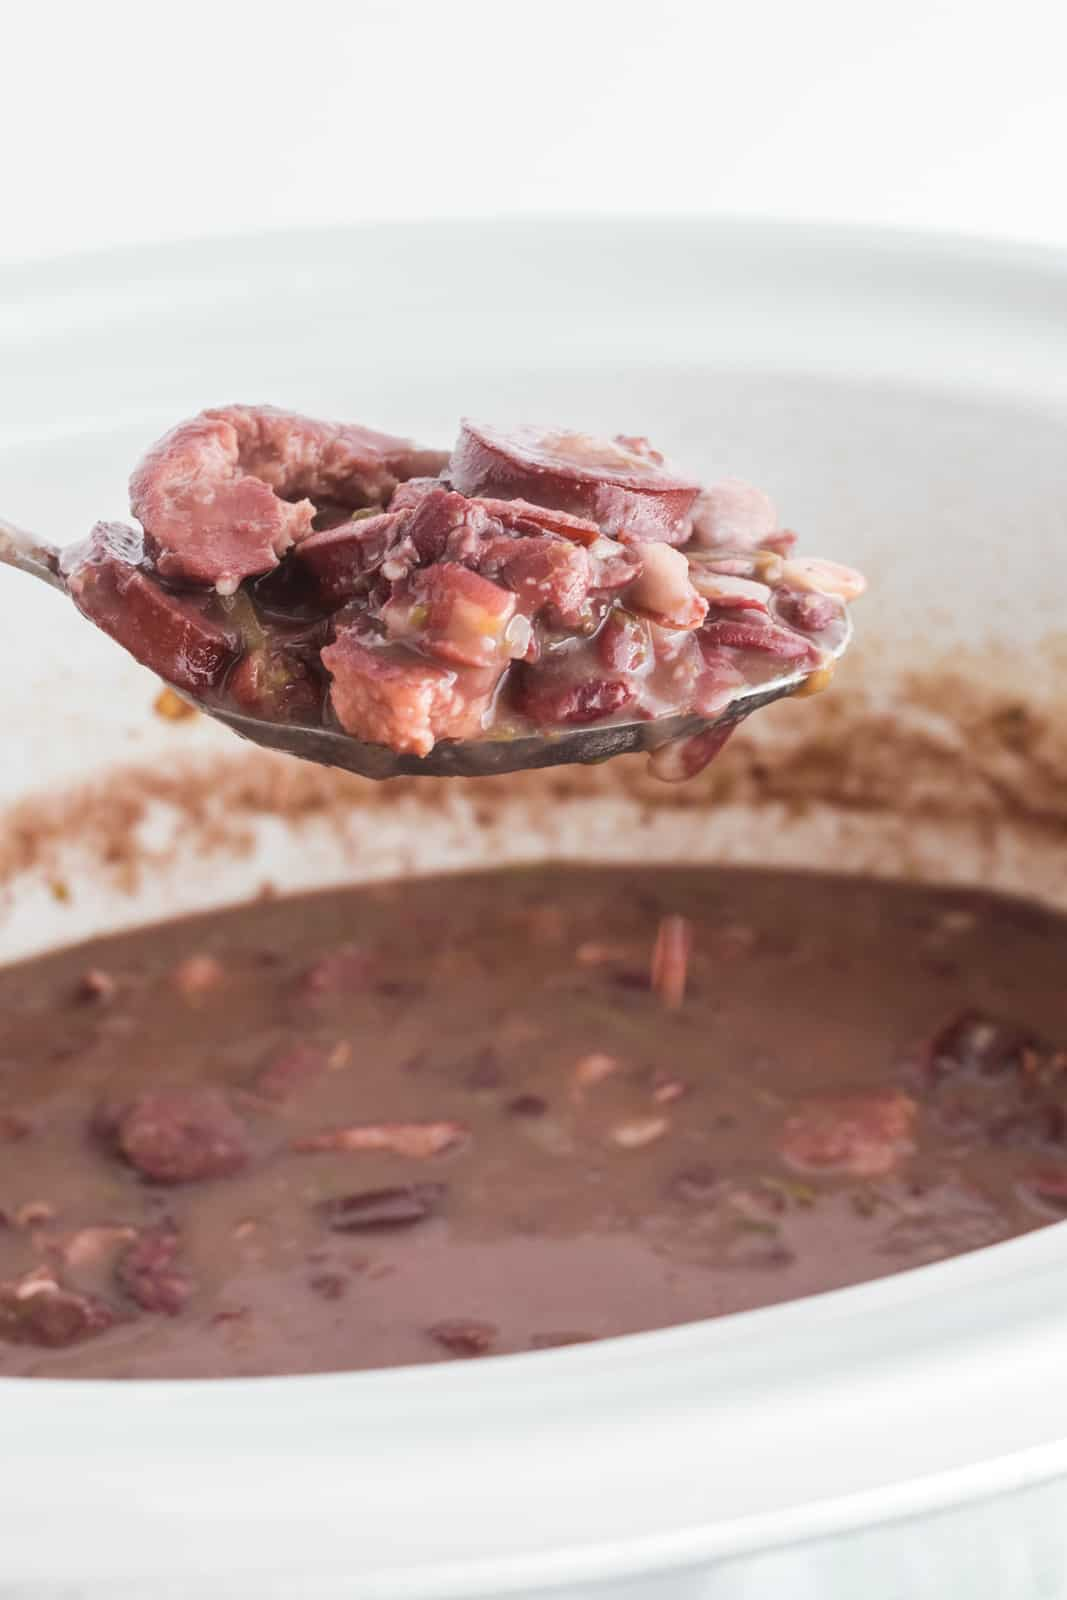 Spoon scooping red beans and rice out of slow cooker